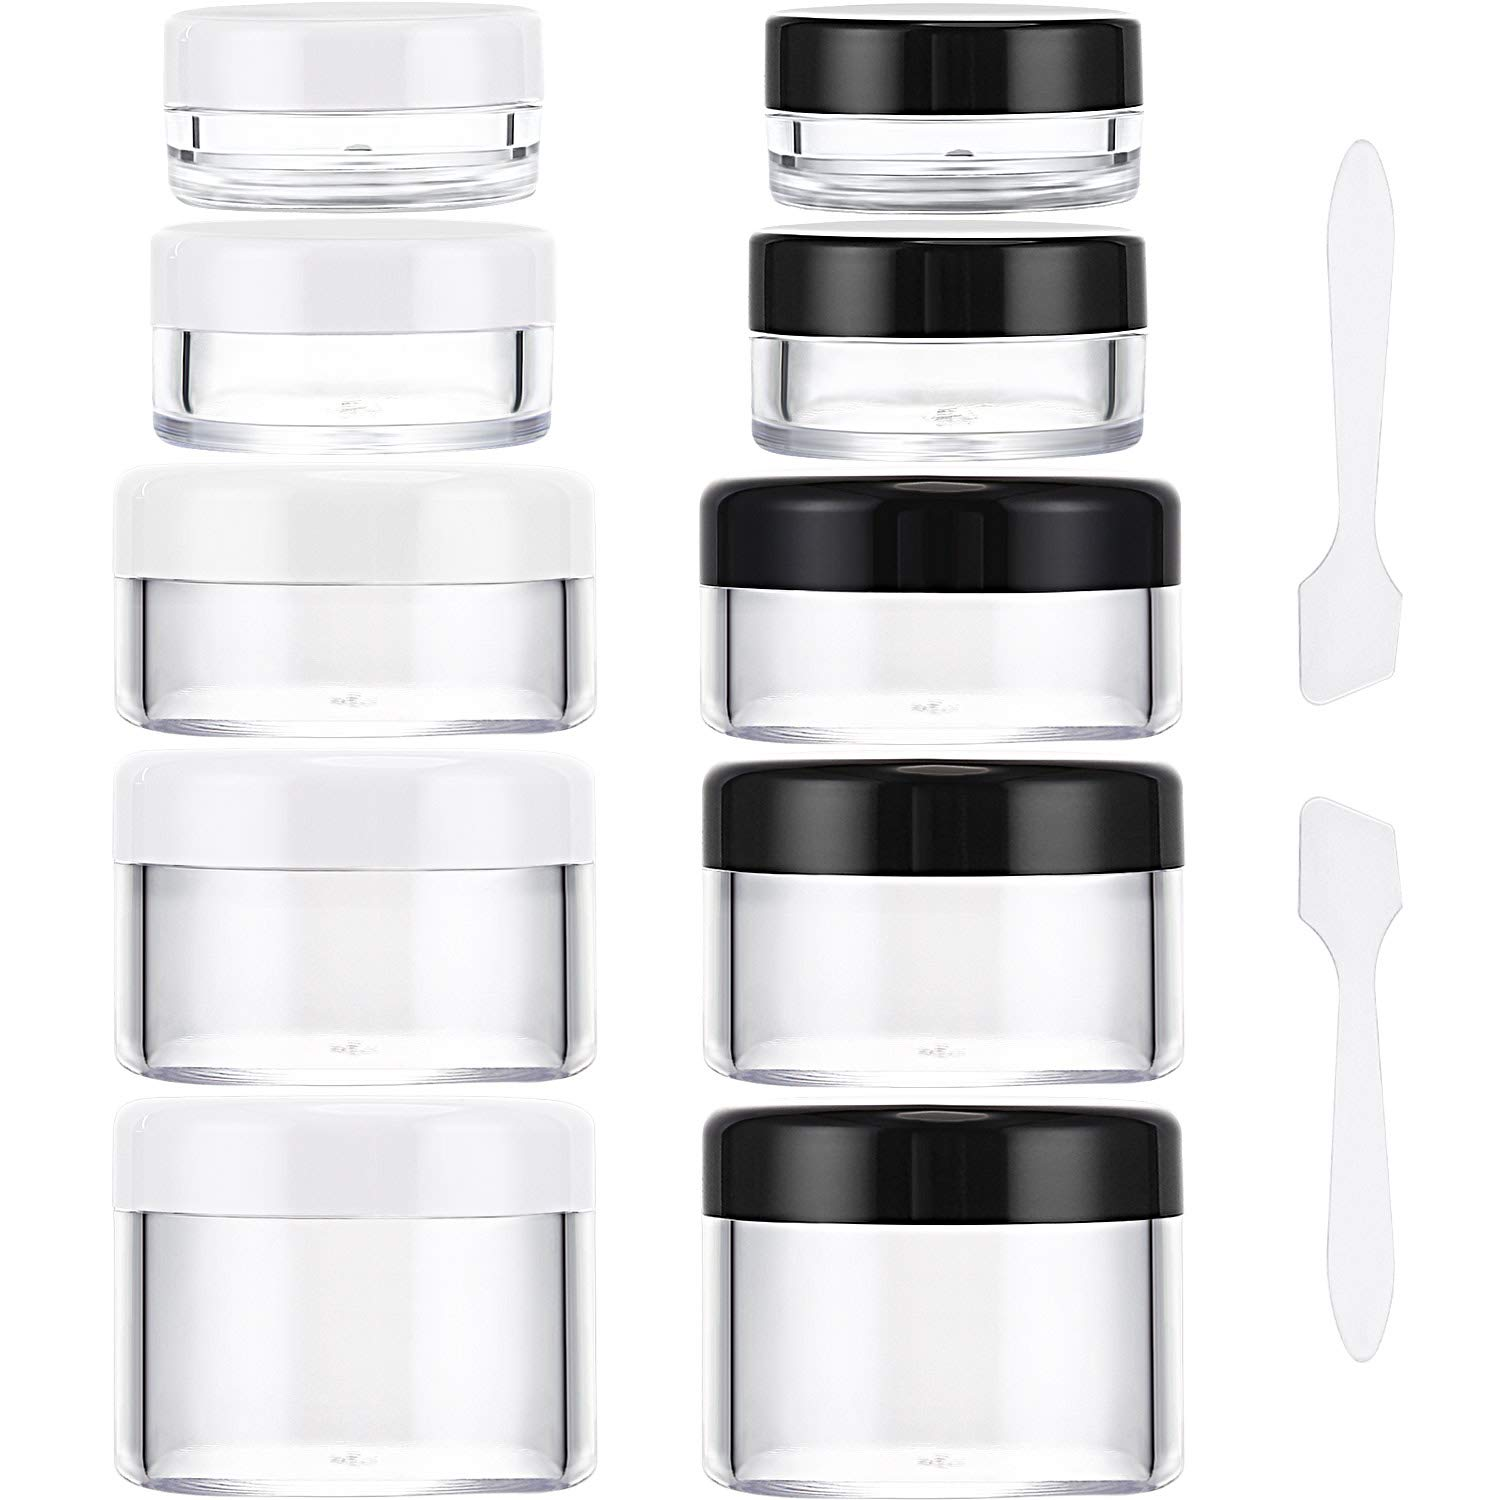 eBoot 10 Pieces Empty Clear Plastic Sample Containers 3/5/ 10/15/ 20 Gram Size Round Cosmetic Pot Jars with Screw Cap Lids and 2 Pieces Mini Spatula (Black and White)